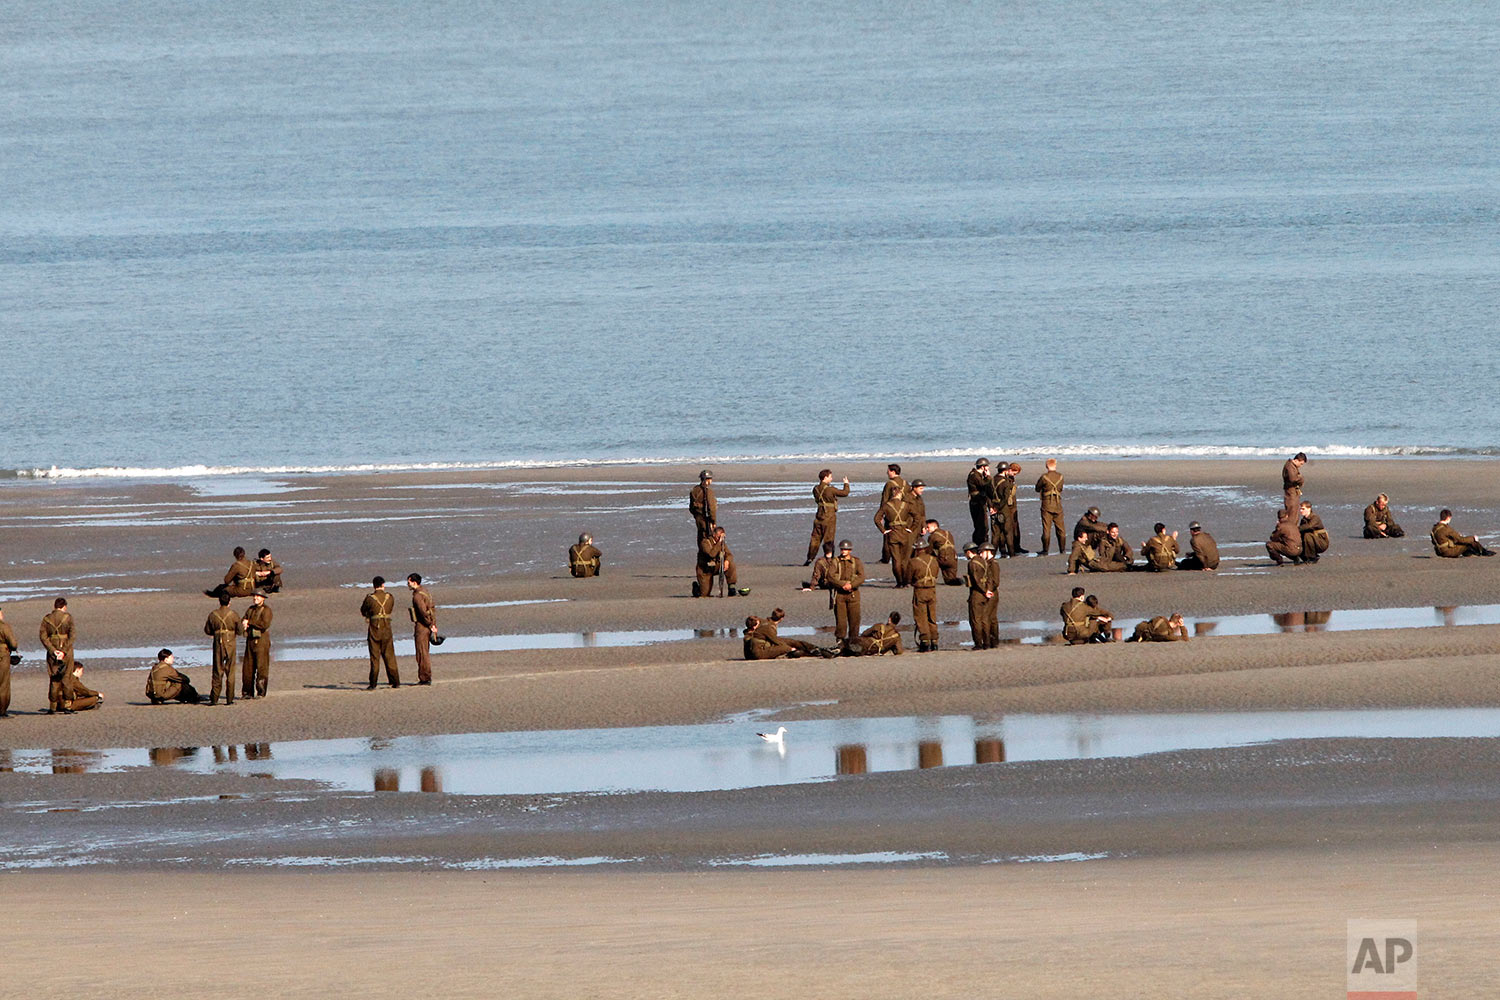 """Actors wait on the beach before filming a scene for the film, """"Dunkirk,"""" in Dunkirk, northern France, Thursday, May 26, 2016. The film, directed by Christopher Nolan, tells the story of the Dunkirk evacuation, which took place at the beginning of World War II. (AP Photo/Michel Spingler)"""